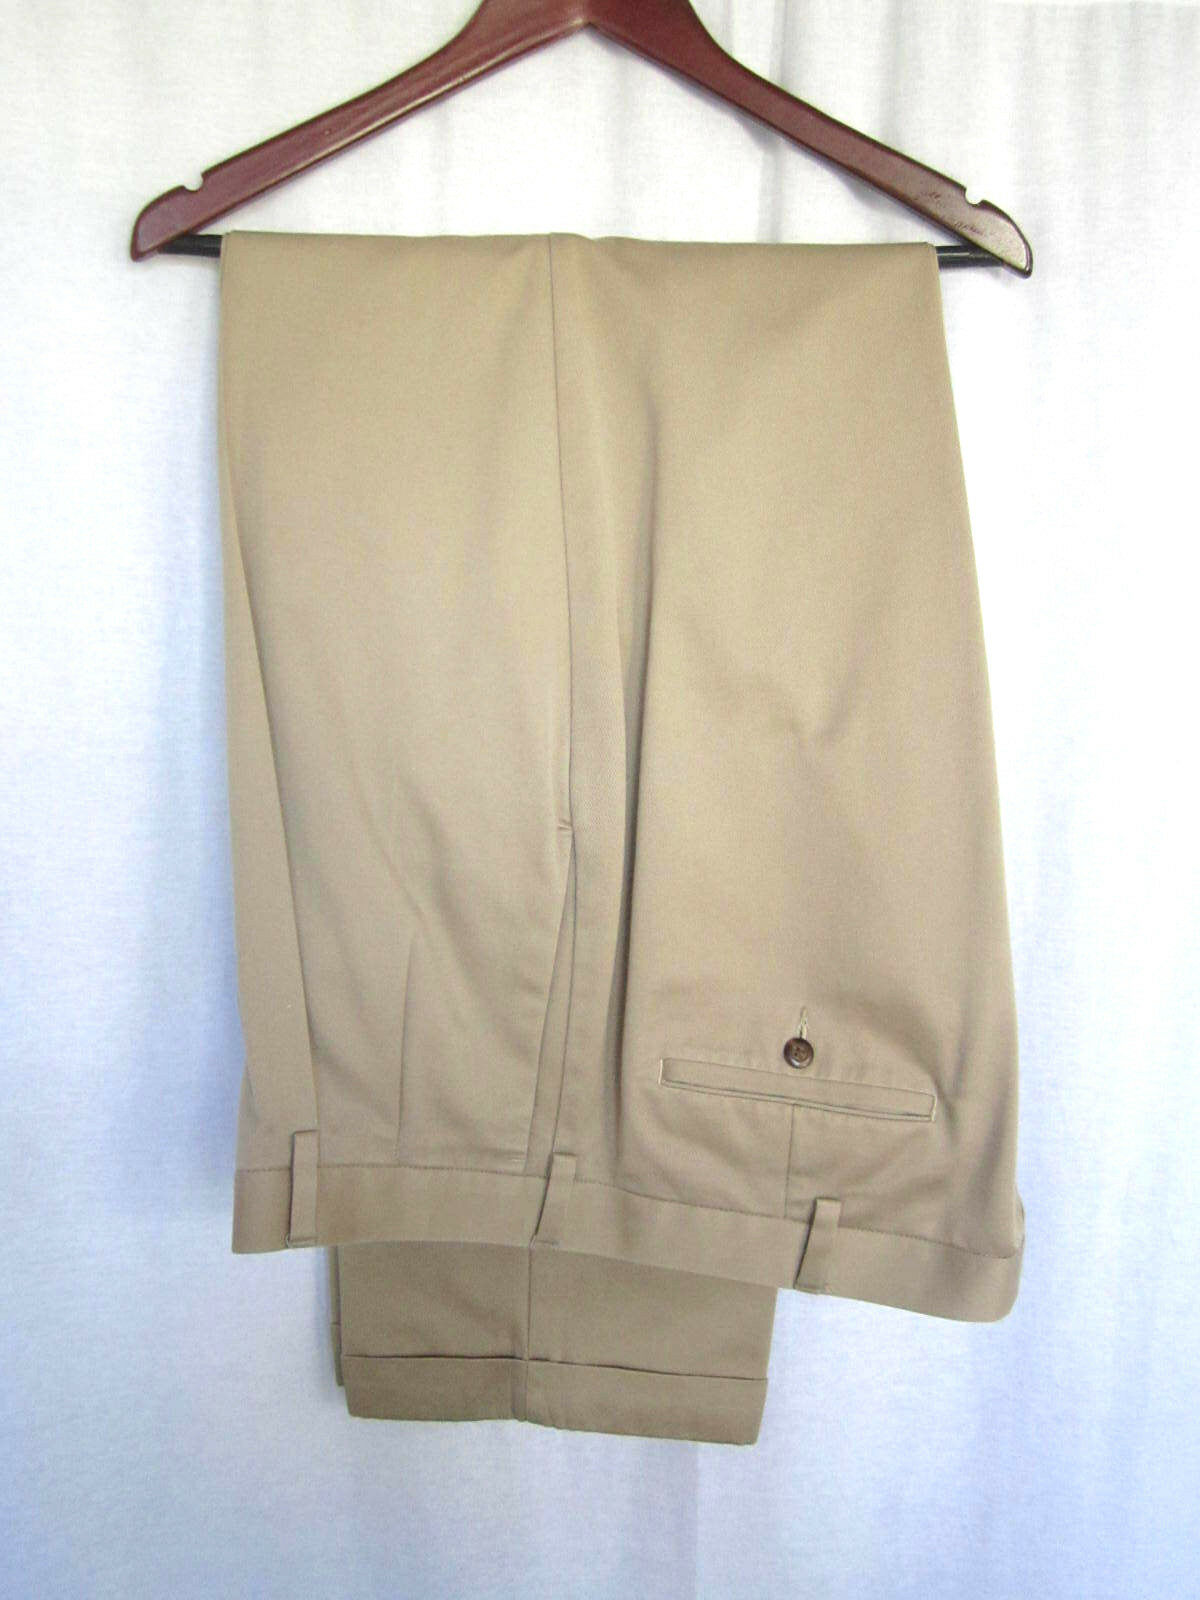 Savane Select Edition Men's Casual Pants 40x32 Tan 100% Cotton